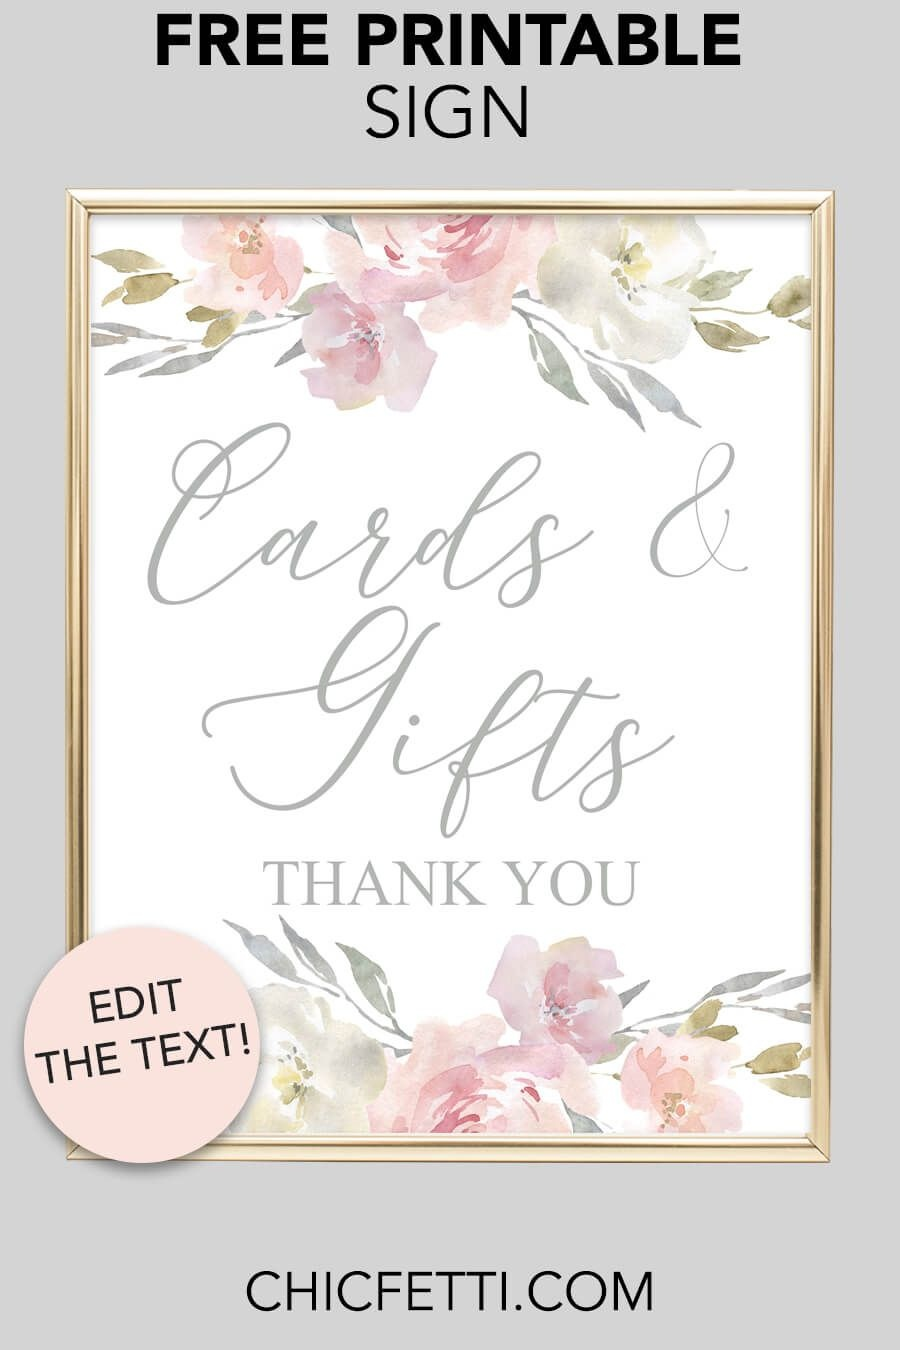 Cards & Gifts Printable Sign (Blush Floral | Free Printables | Free - Cards Sign Free Printable